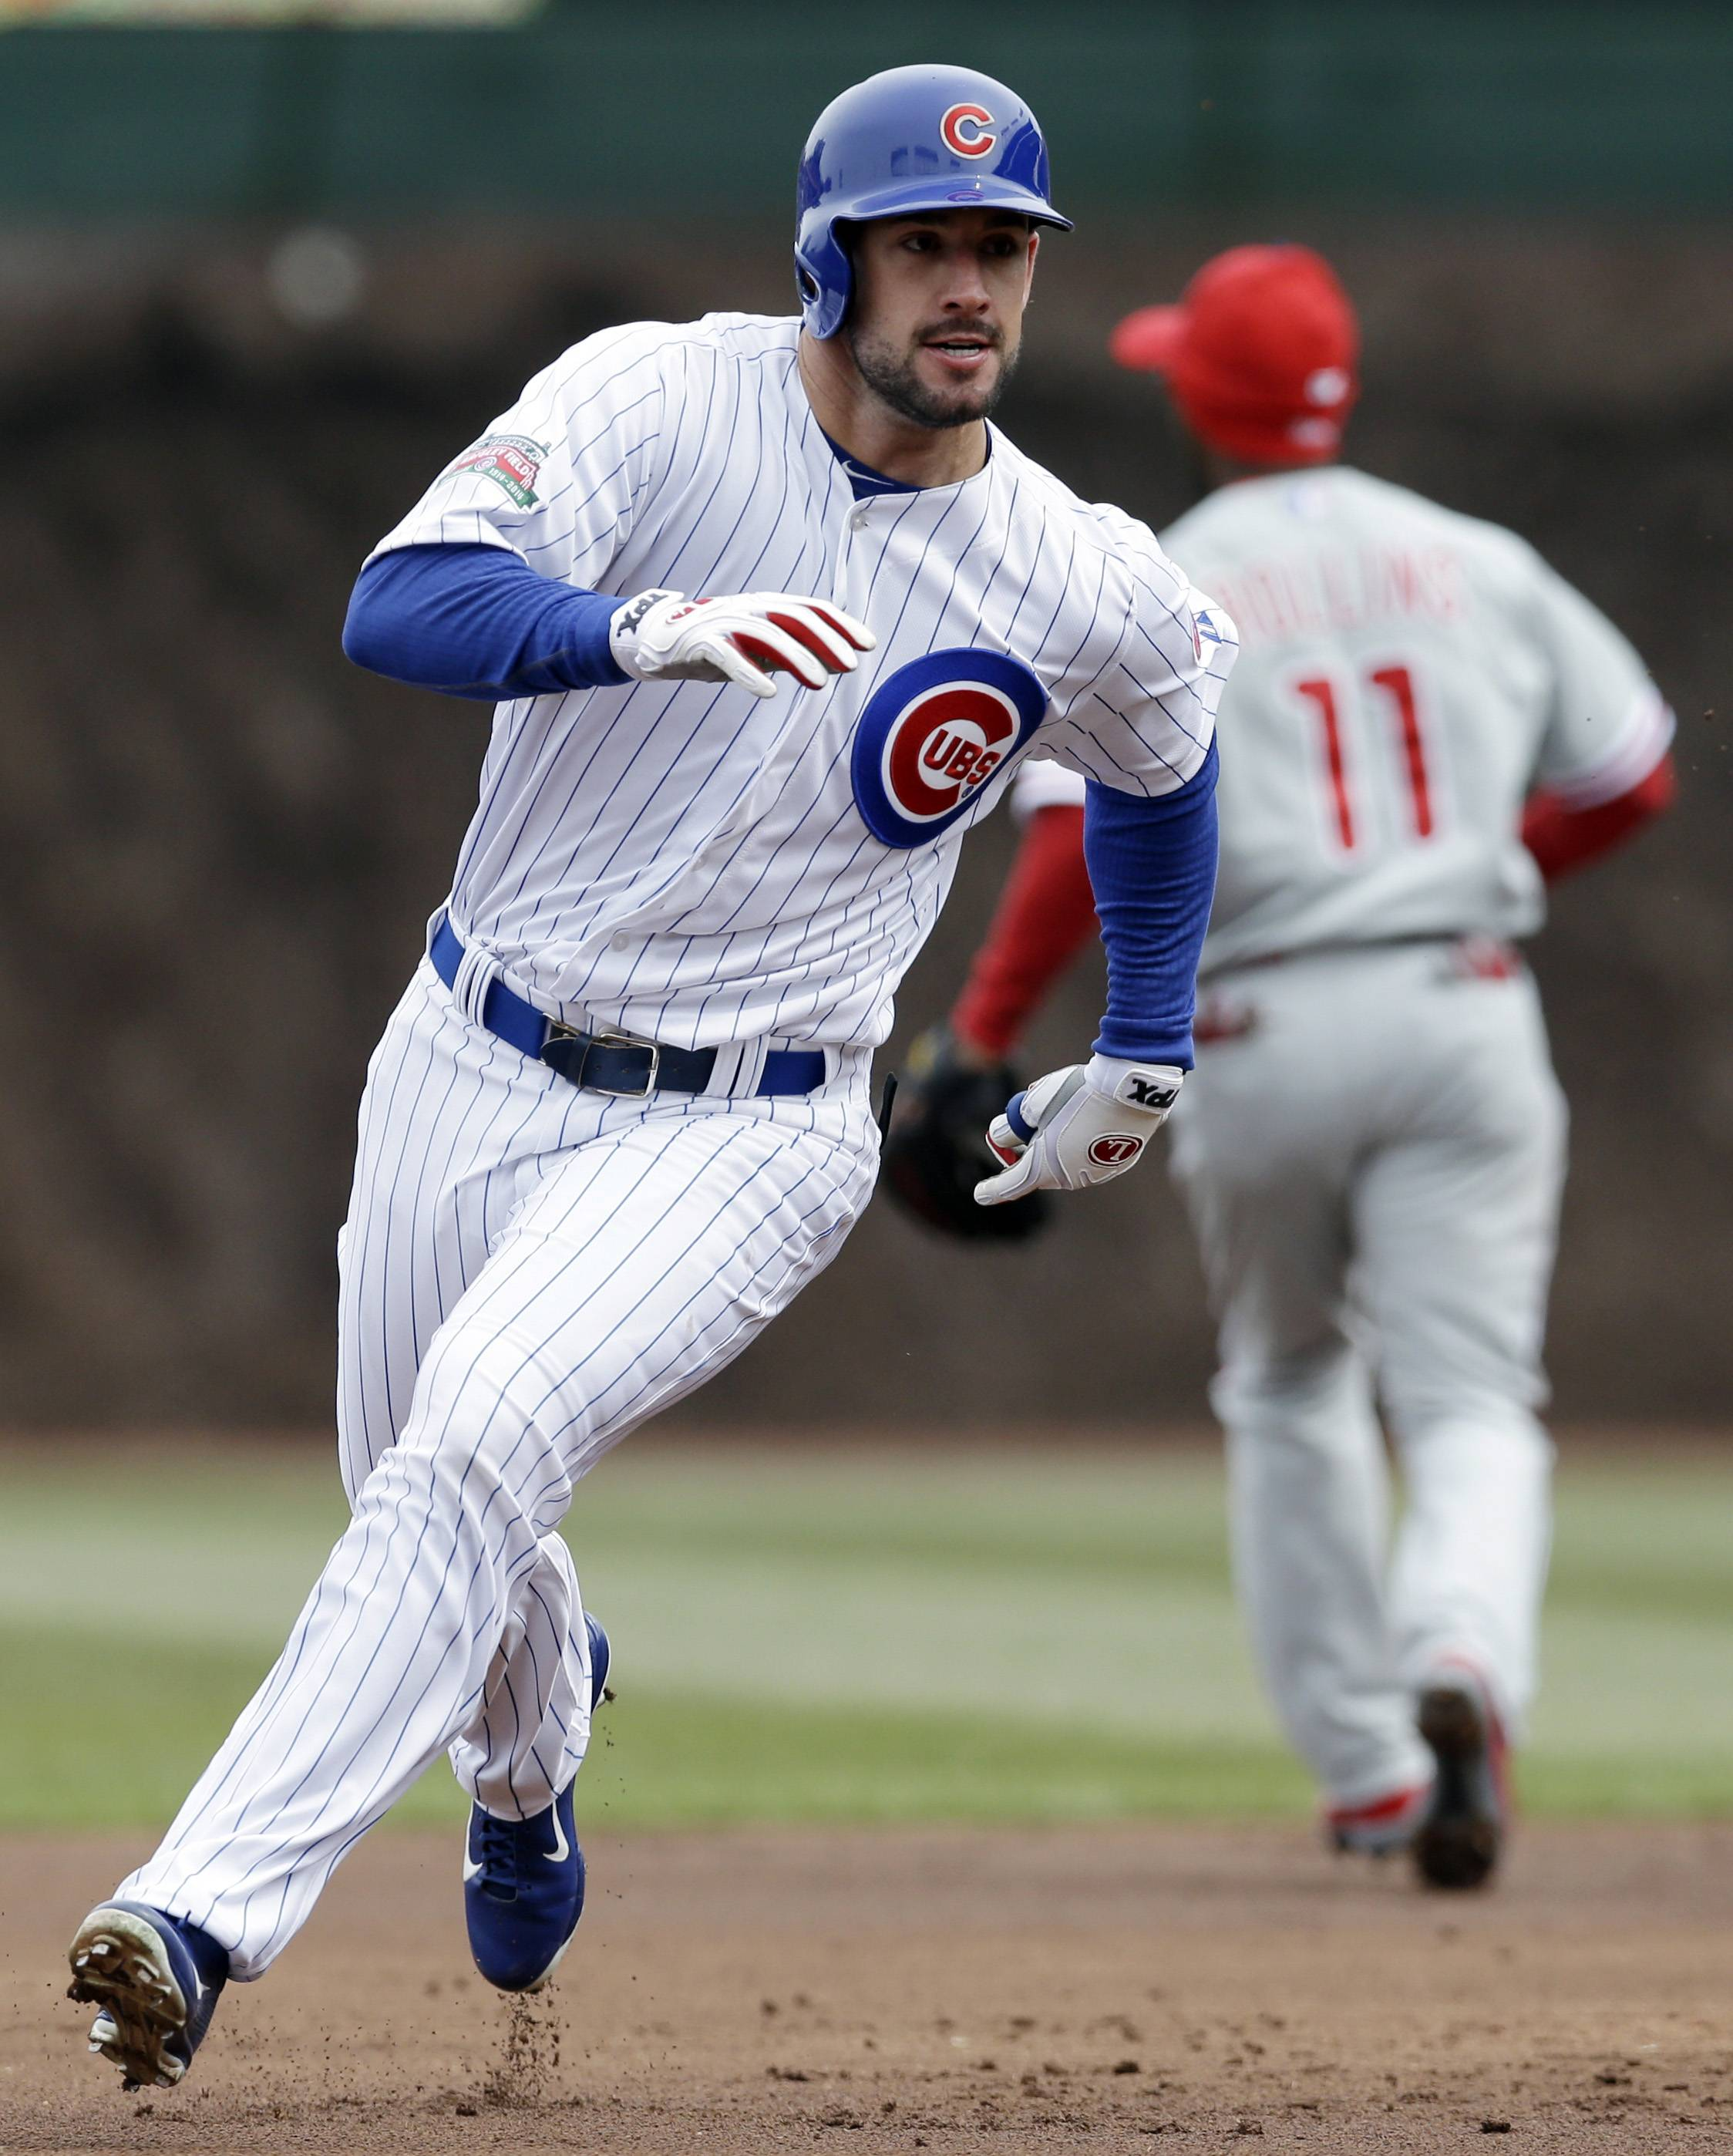 Ryan Kalish runs to third after hitting a triple during the first inning of a baseball game scoring Emilio Bonifacio against the Philadelphia Phillies in Chicago, Sunday, April 6, 2014.